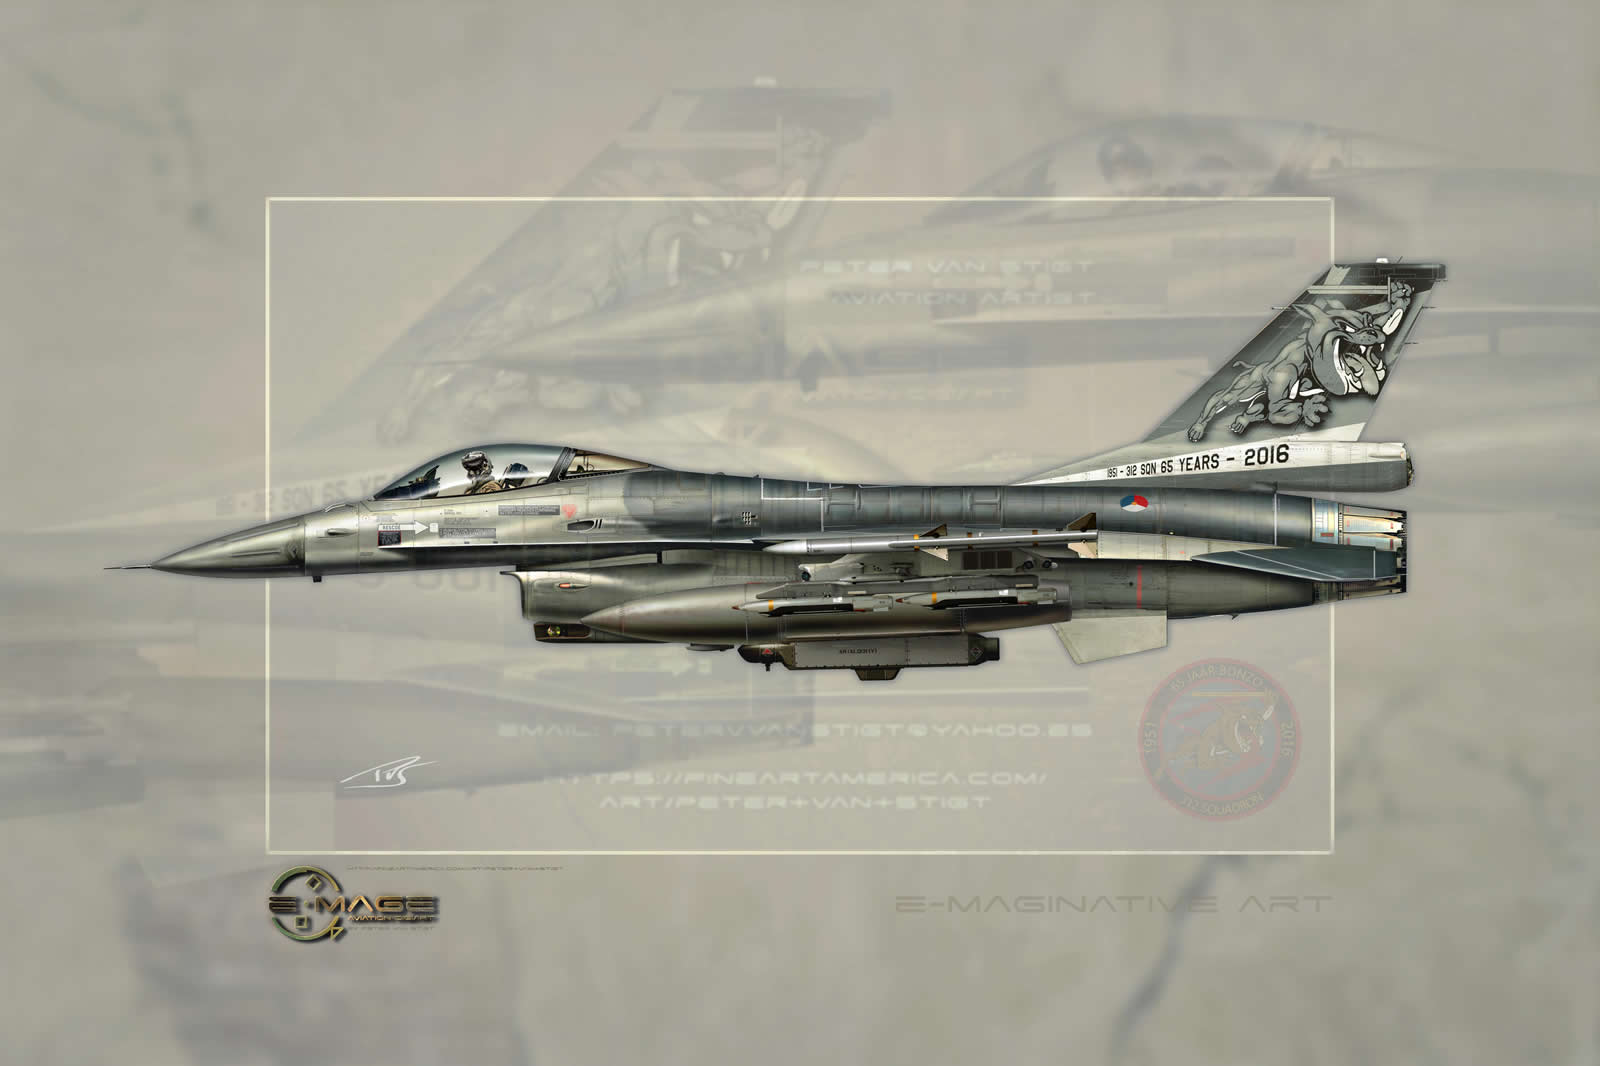 J-001 Special Tail F-16 Profile